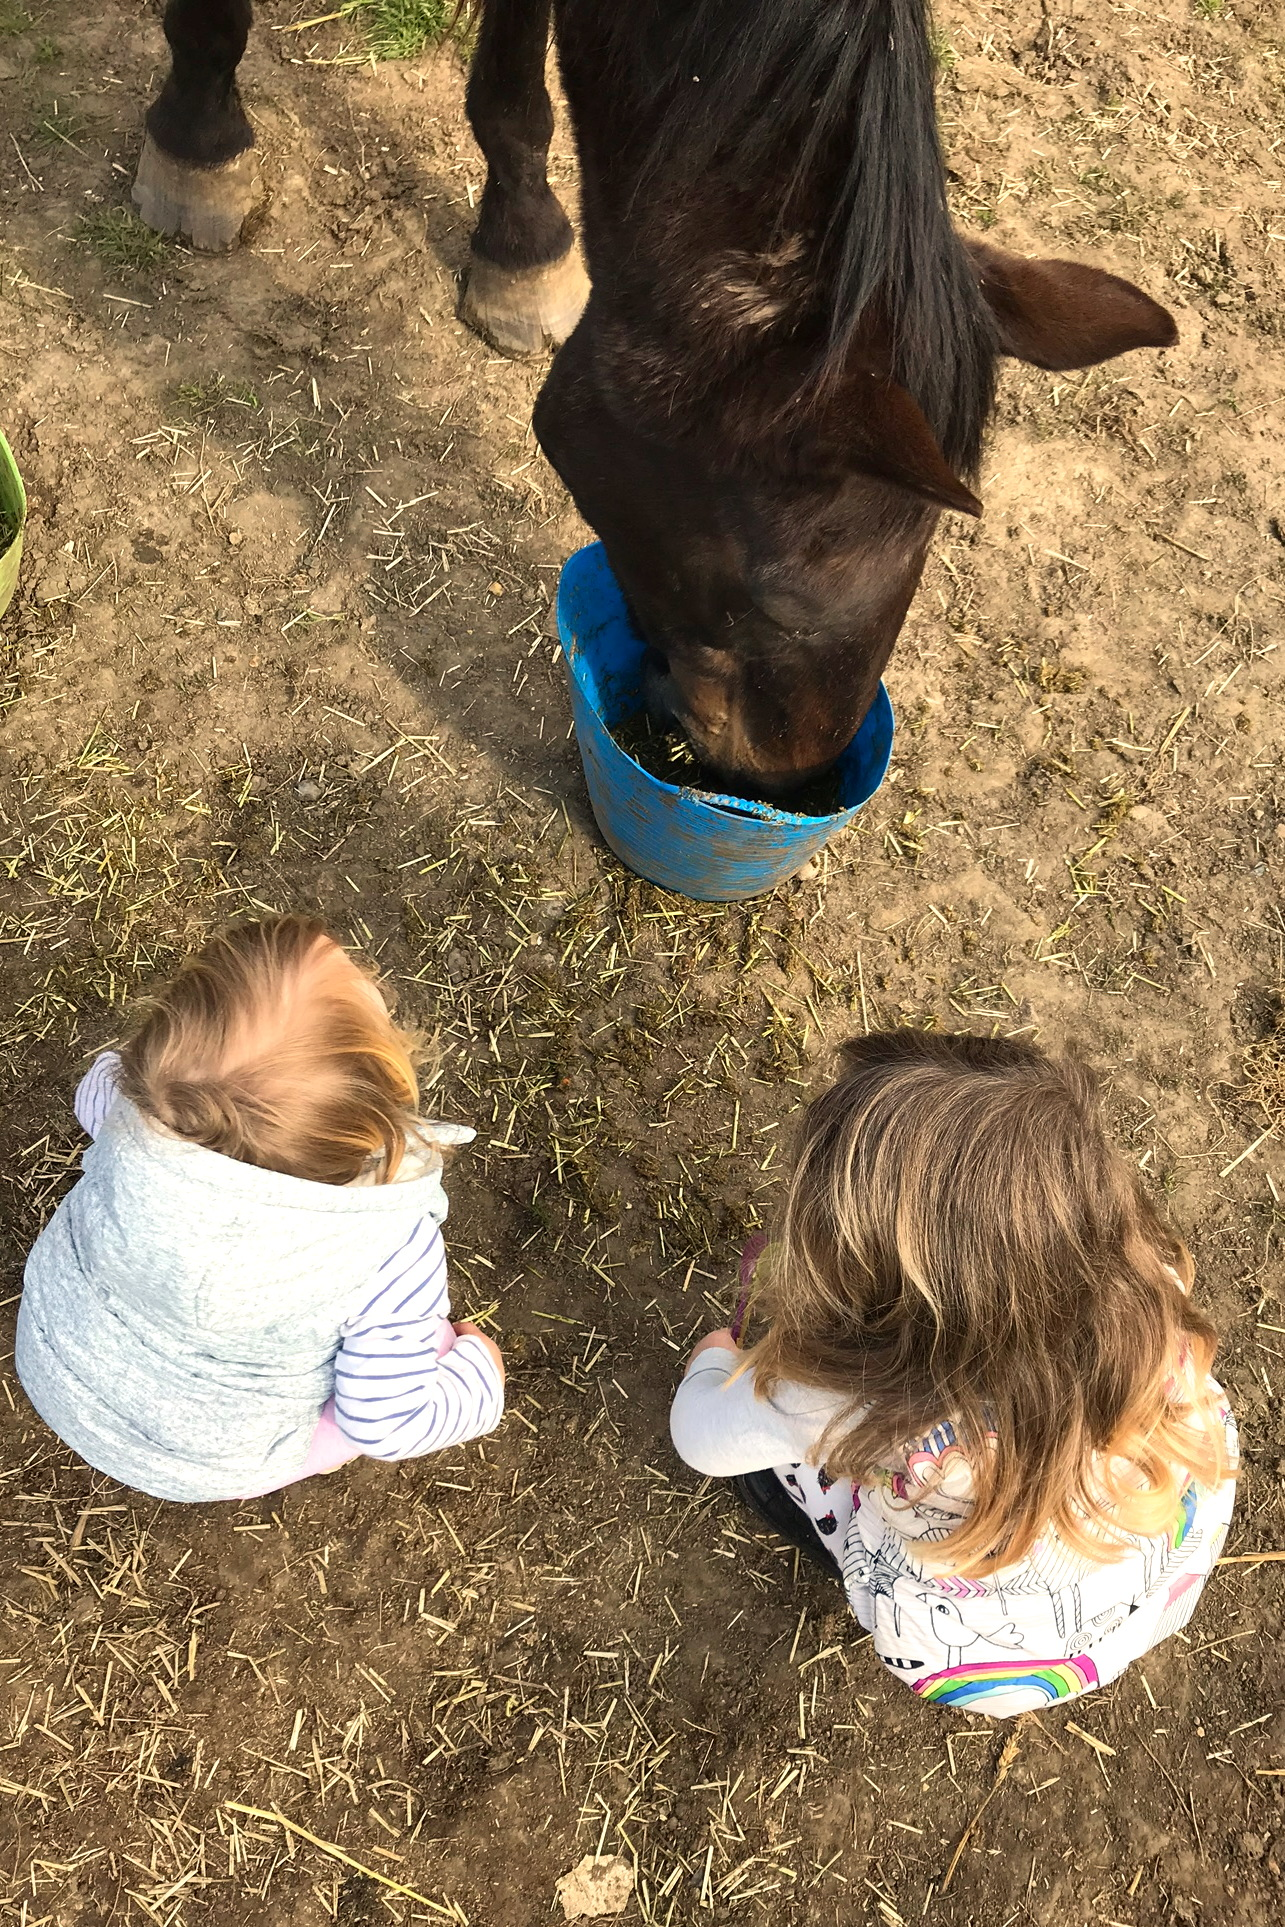 two sisters crouched in front of a horse eating from a bucket